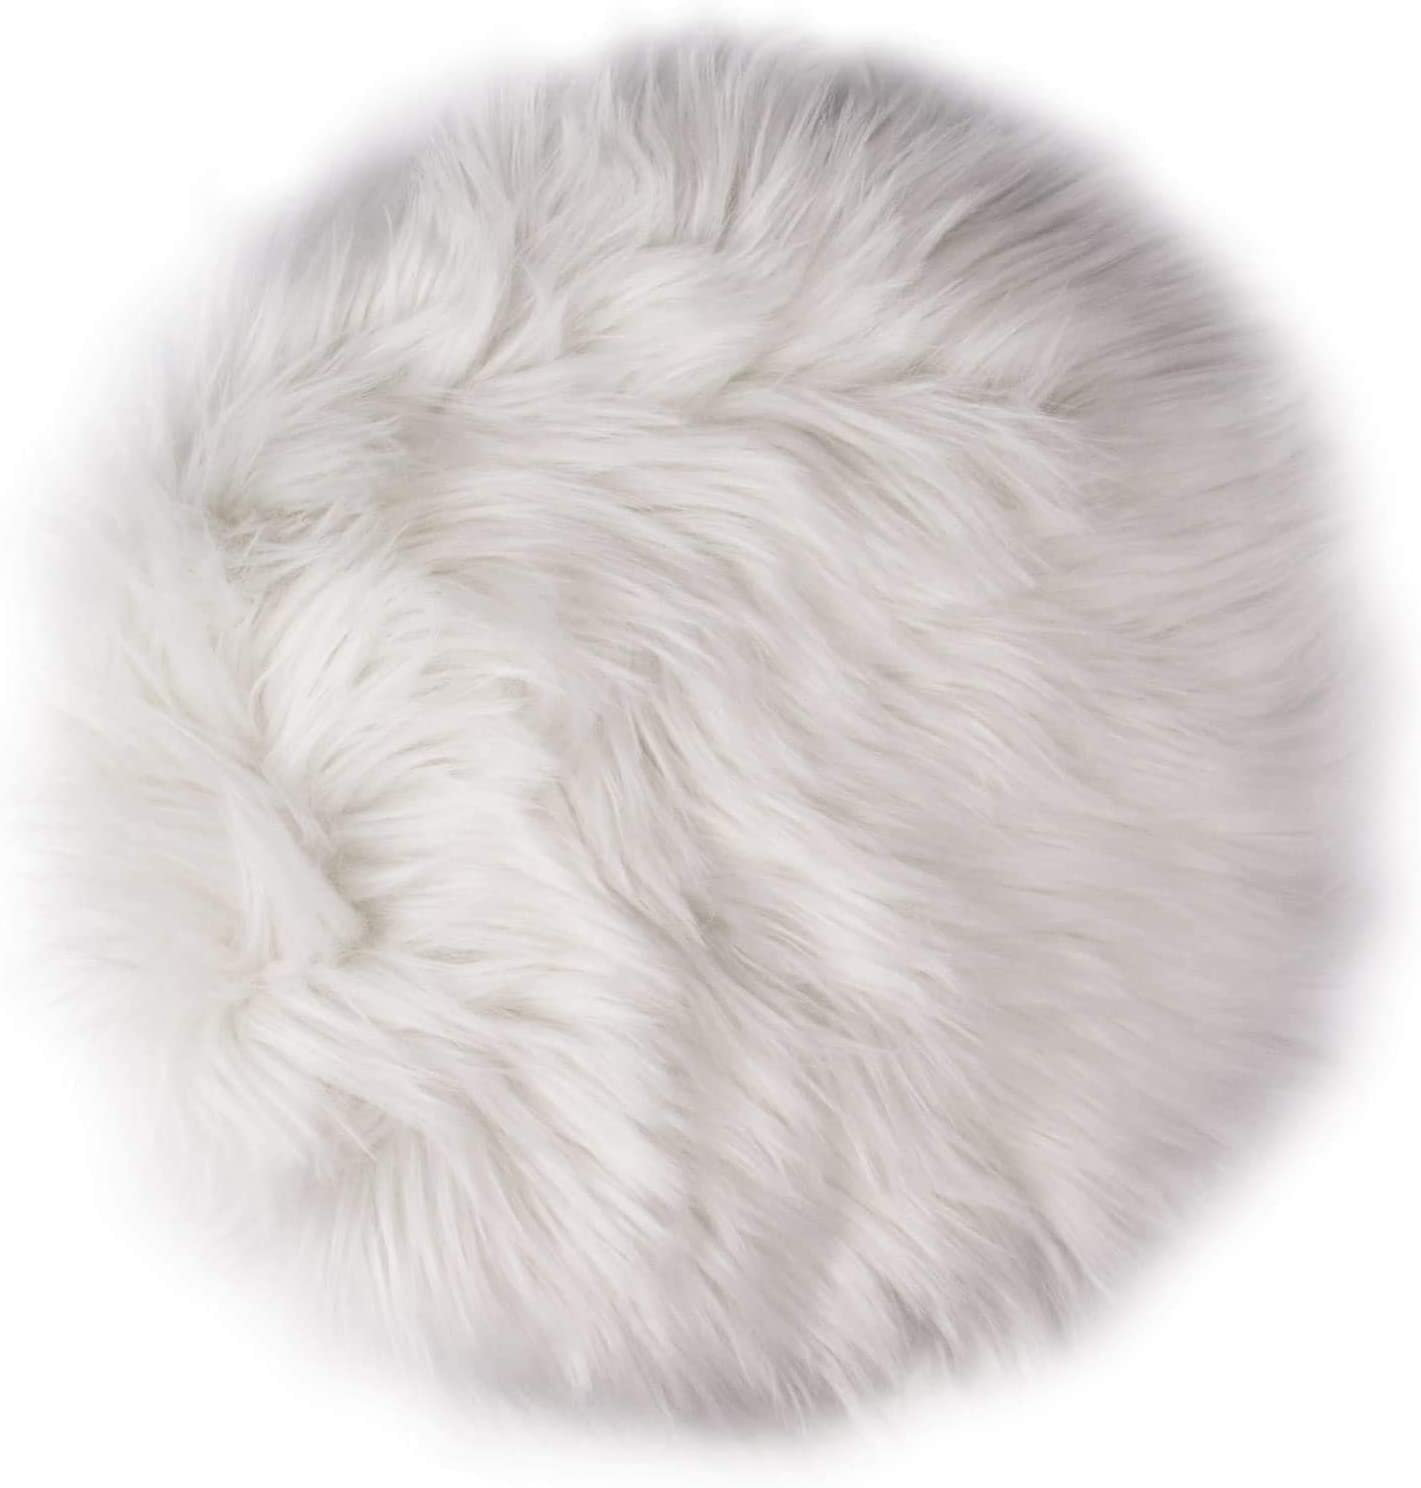 12 Inches Mini Round Faux Fur Sheepskin Rugs, Fluffy Living Room Carpet Mini Small Size Fit for Photographing Background of Jewellery(White)